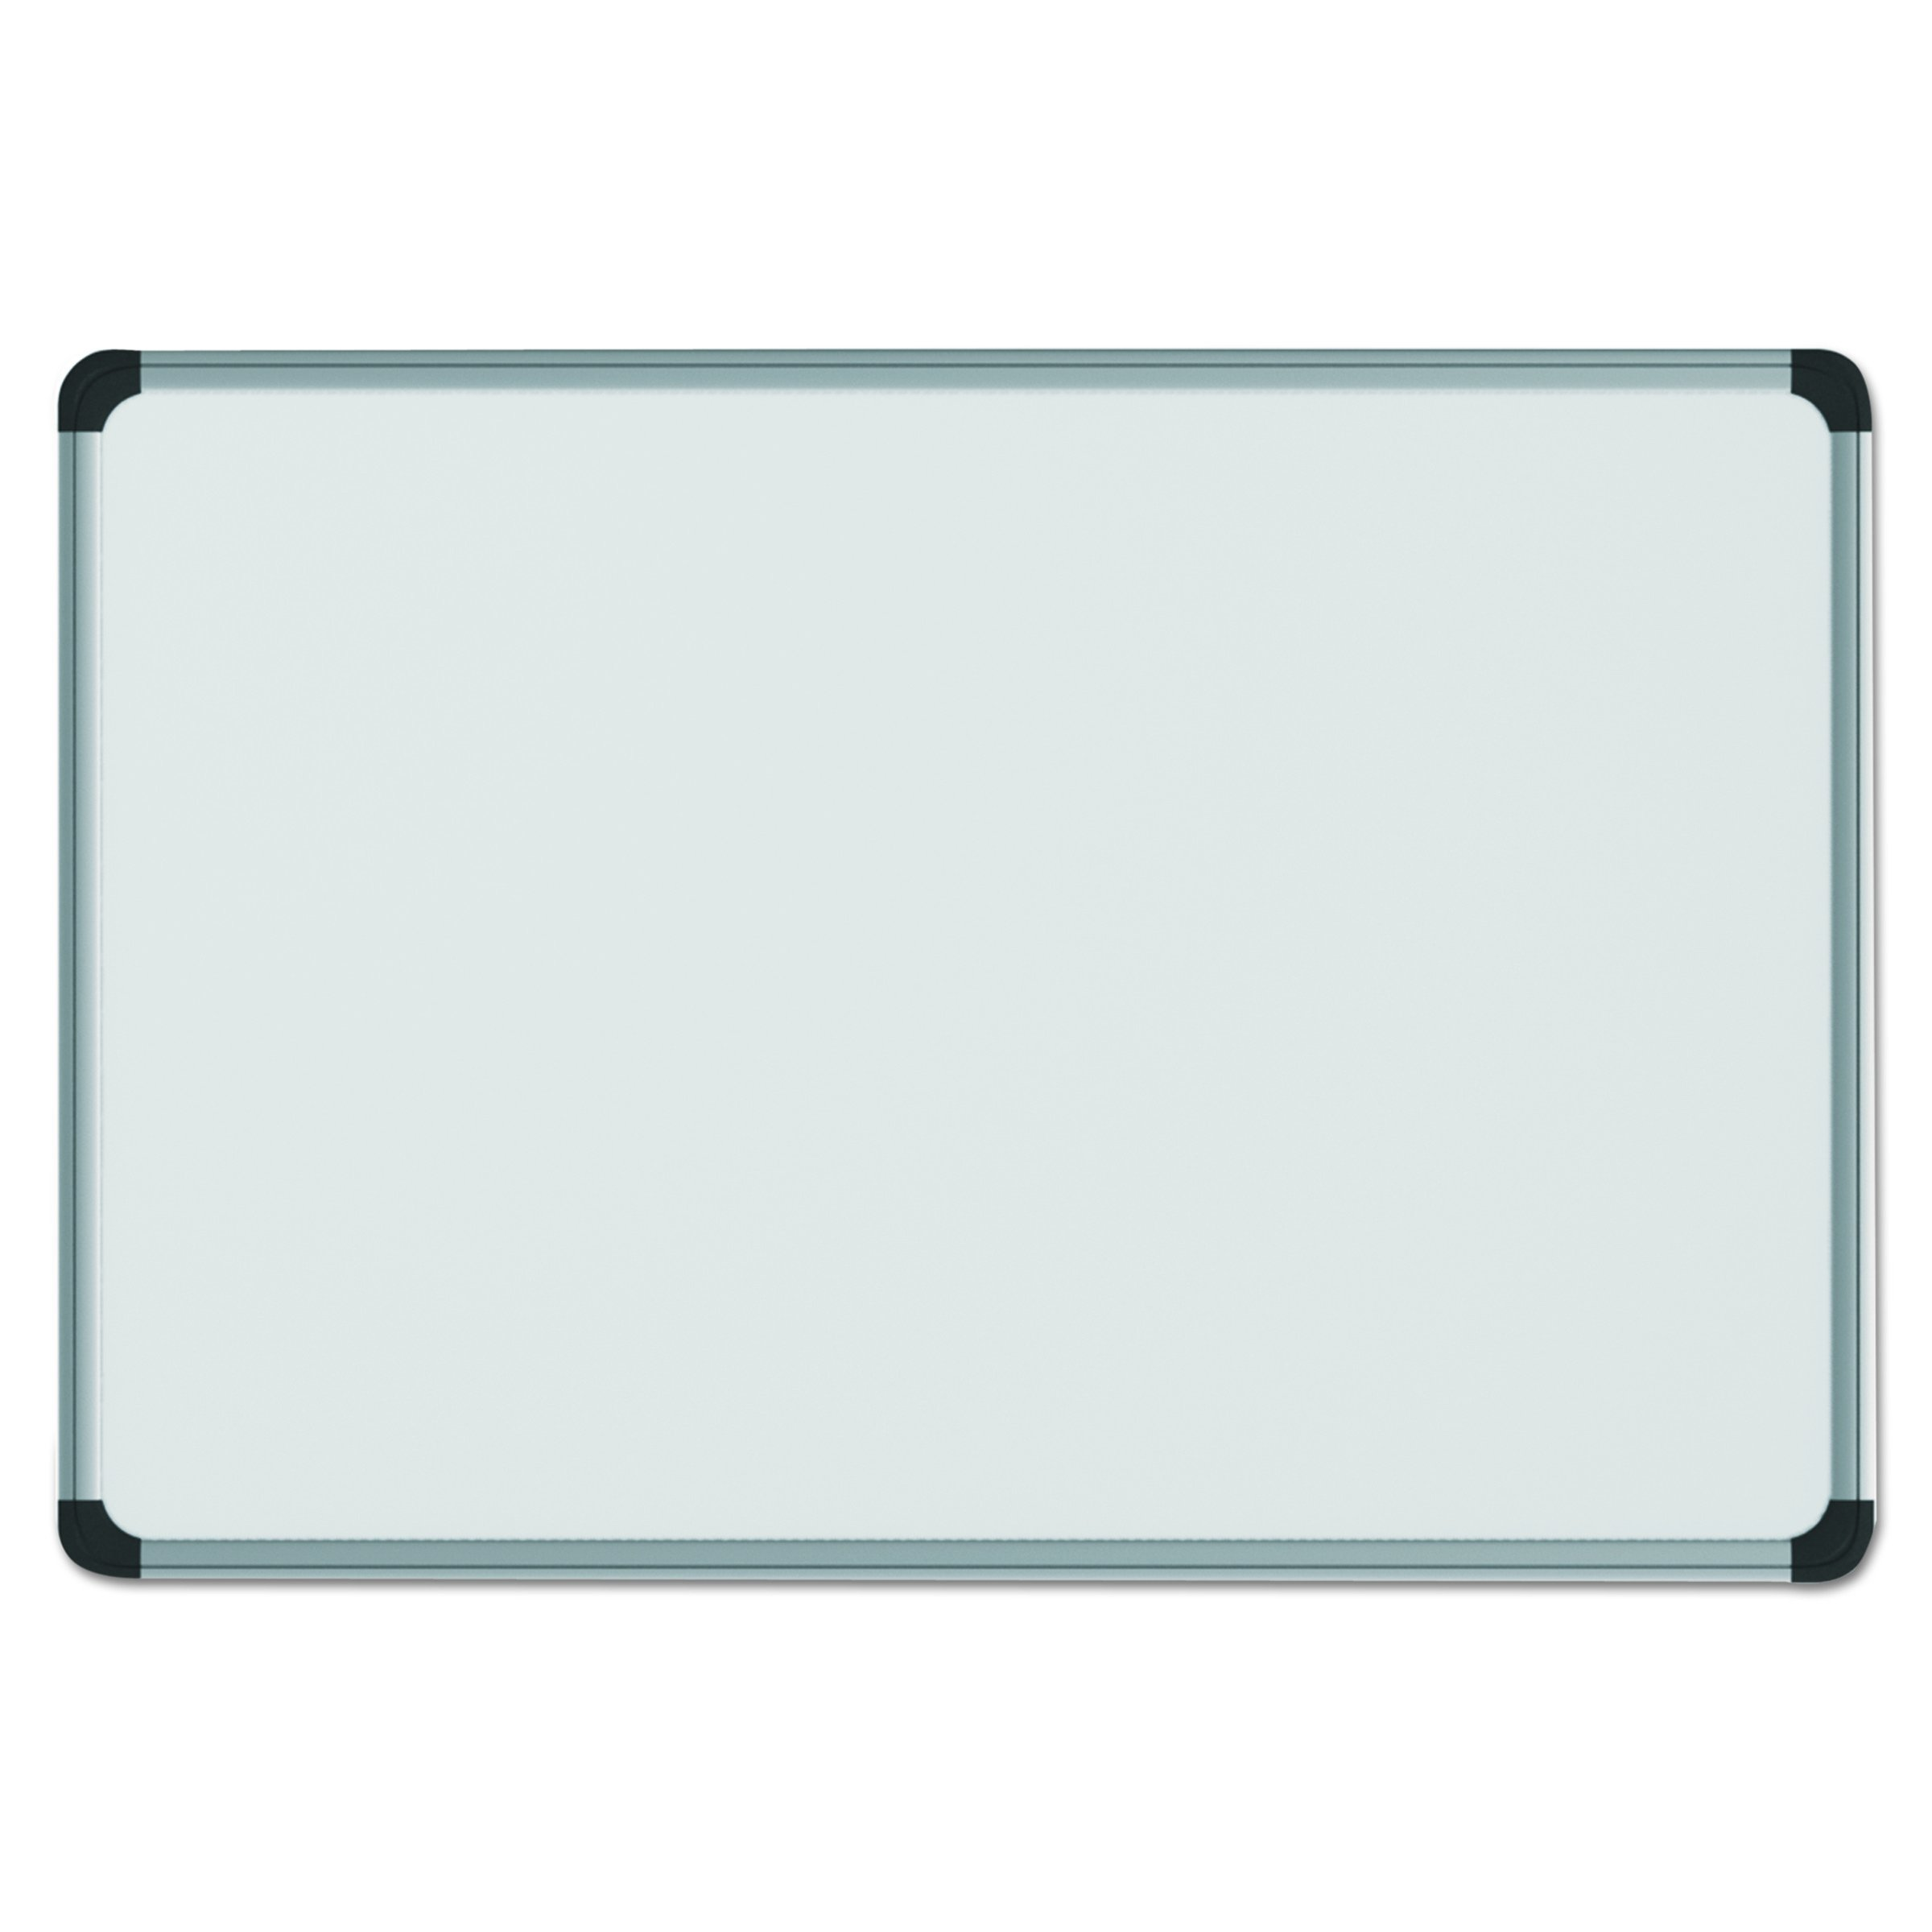 Universal 43735 Magnetic Steel Dry Erase Board, 72 x 48, White, Aluminum Frame by Universal One